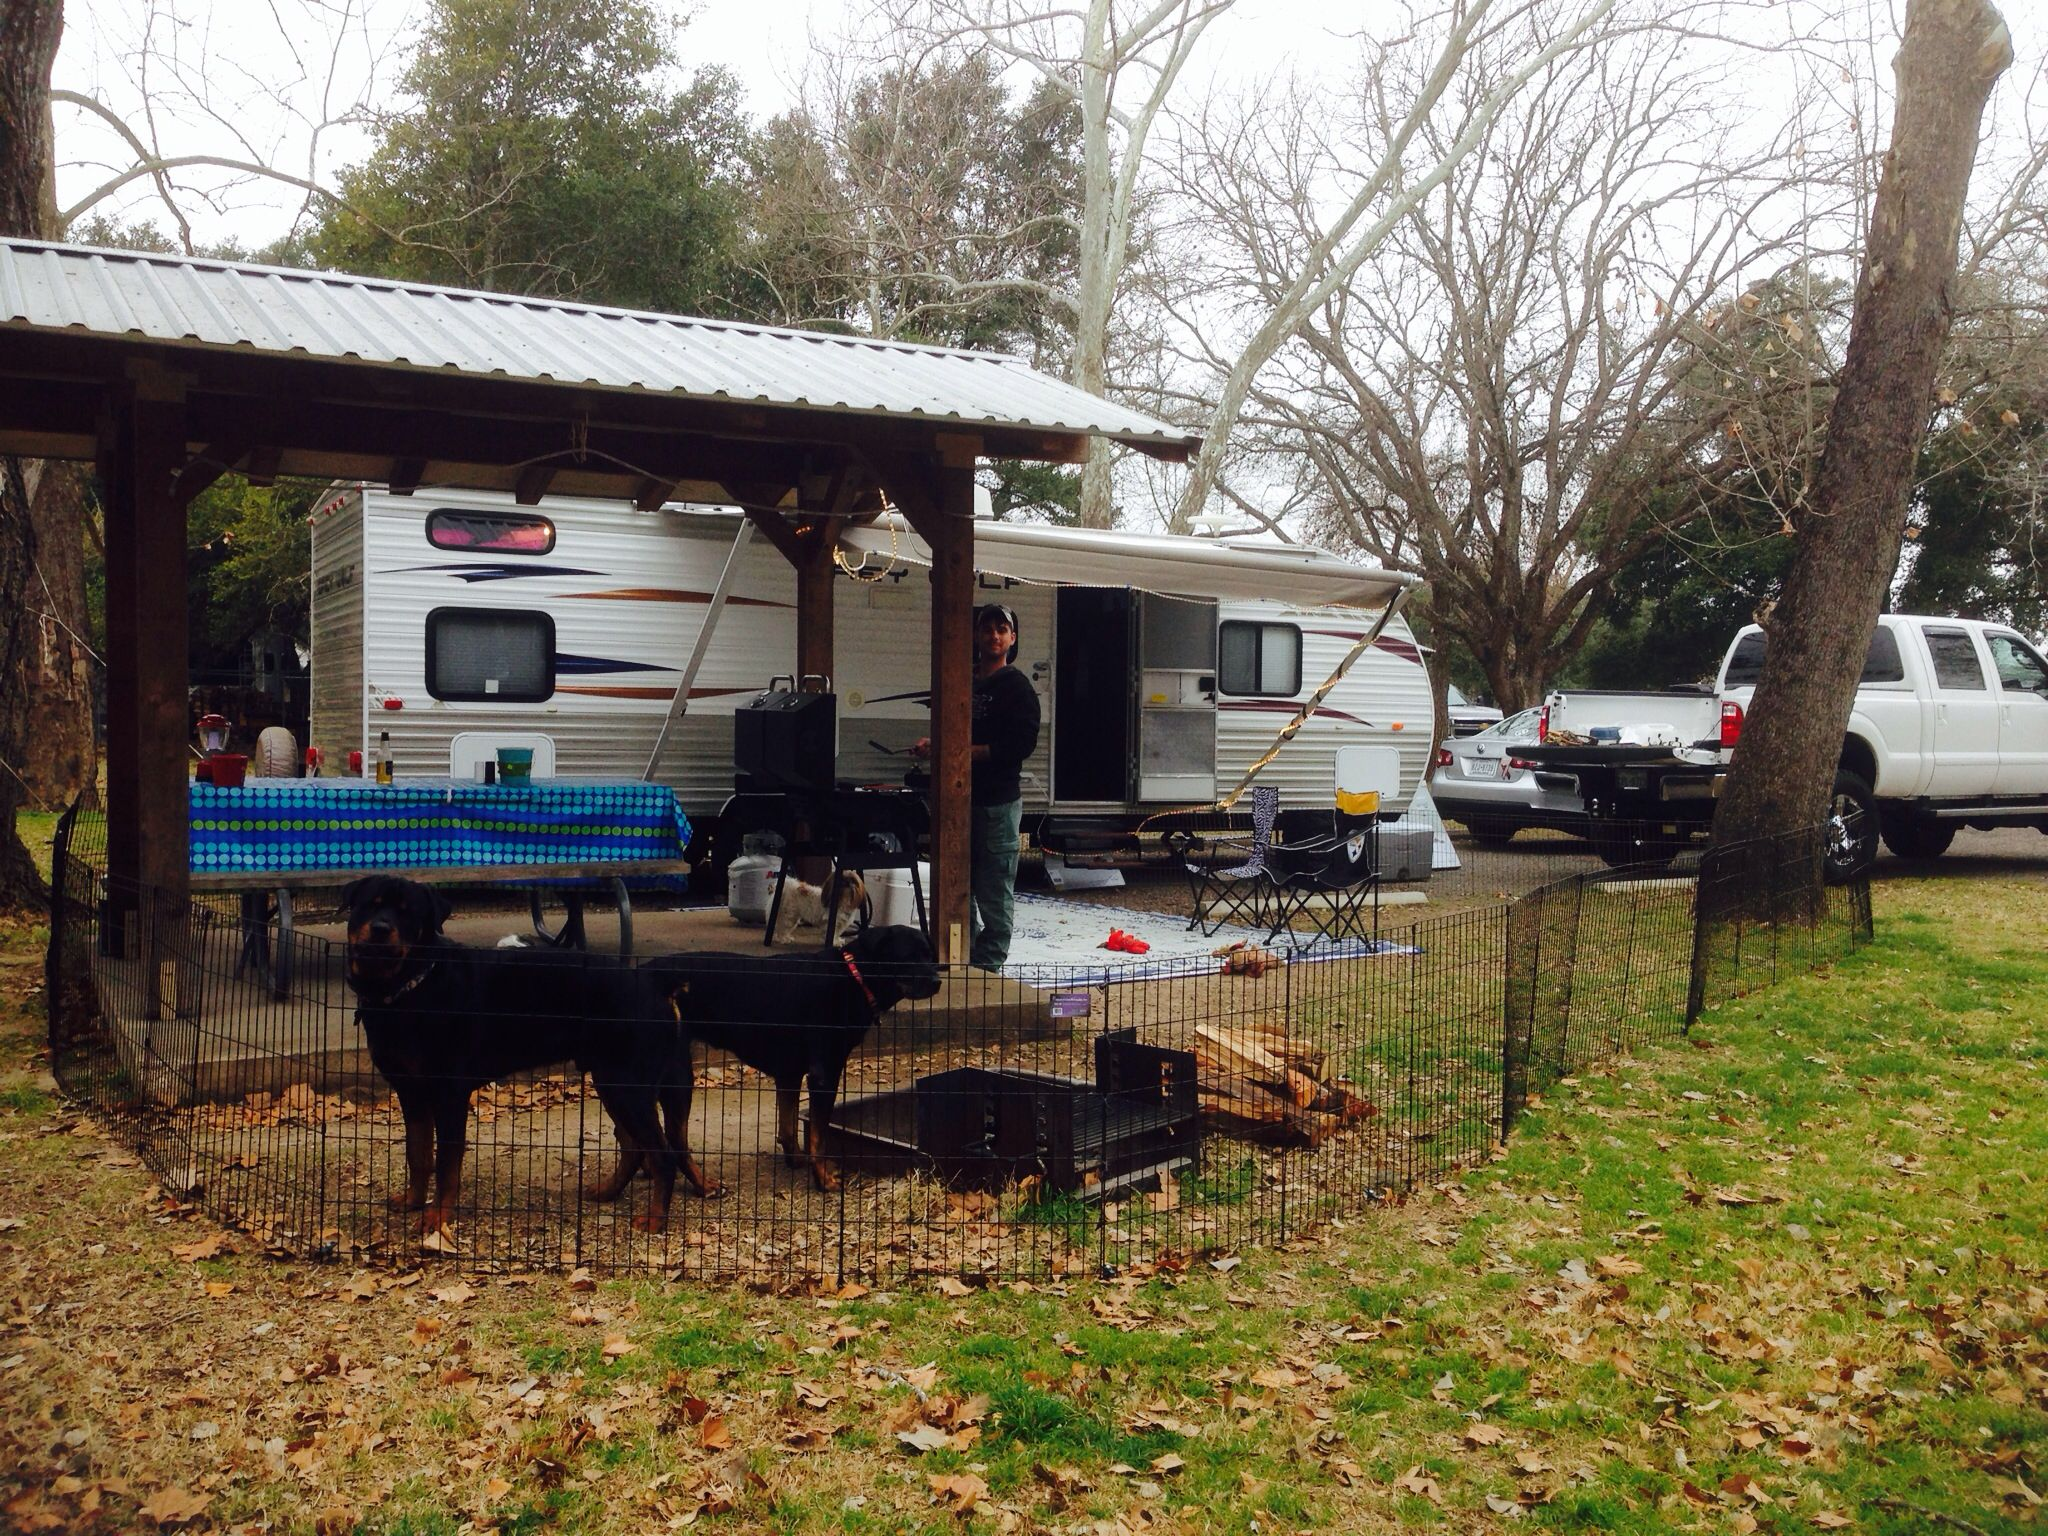 Fencing For Rvs : Camping rv dog fence my rottweilers are good and will